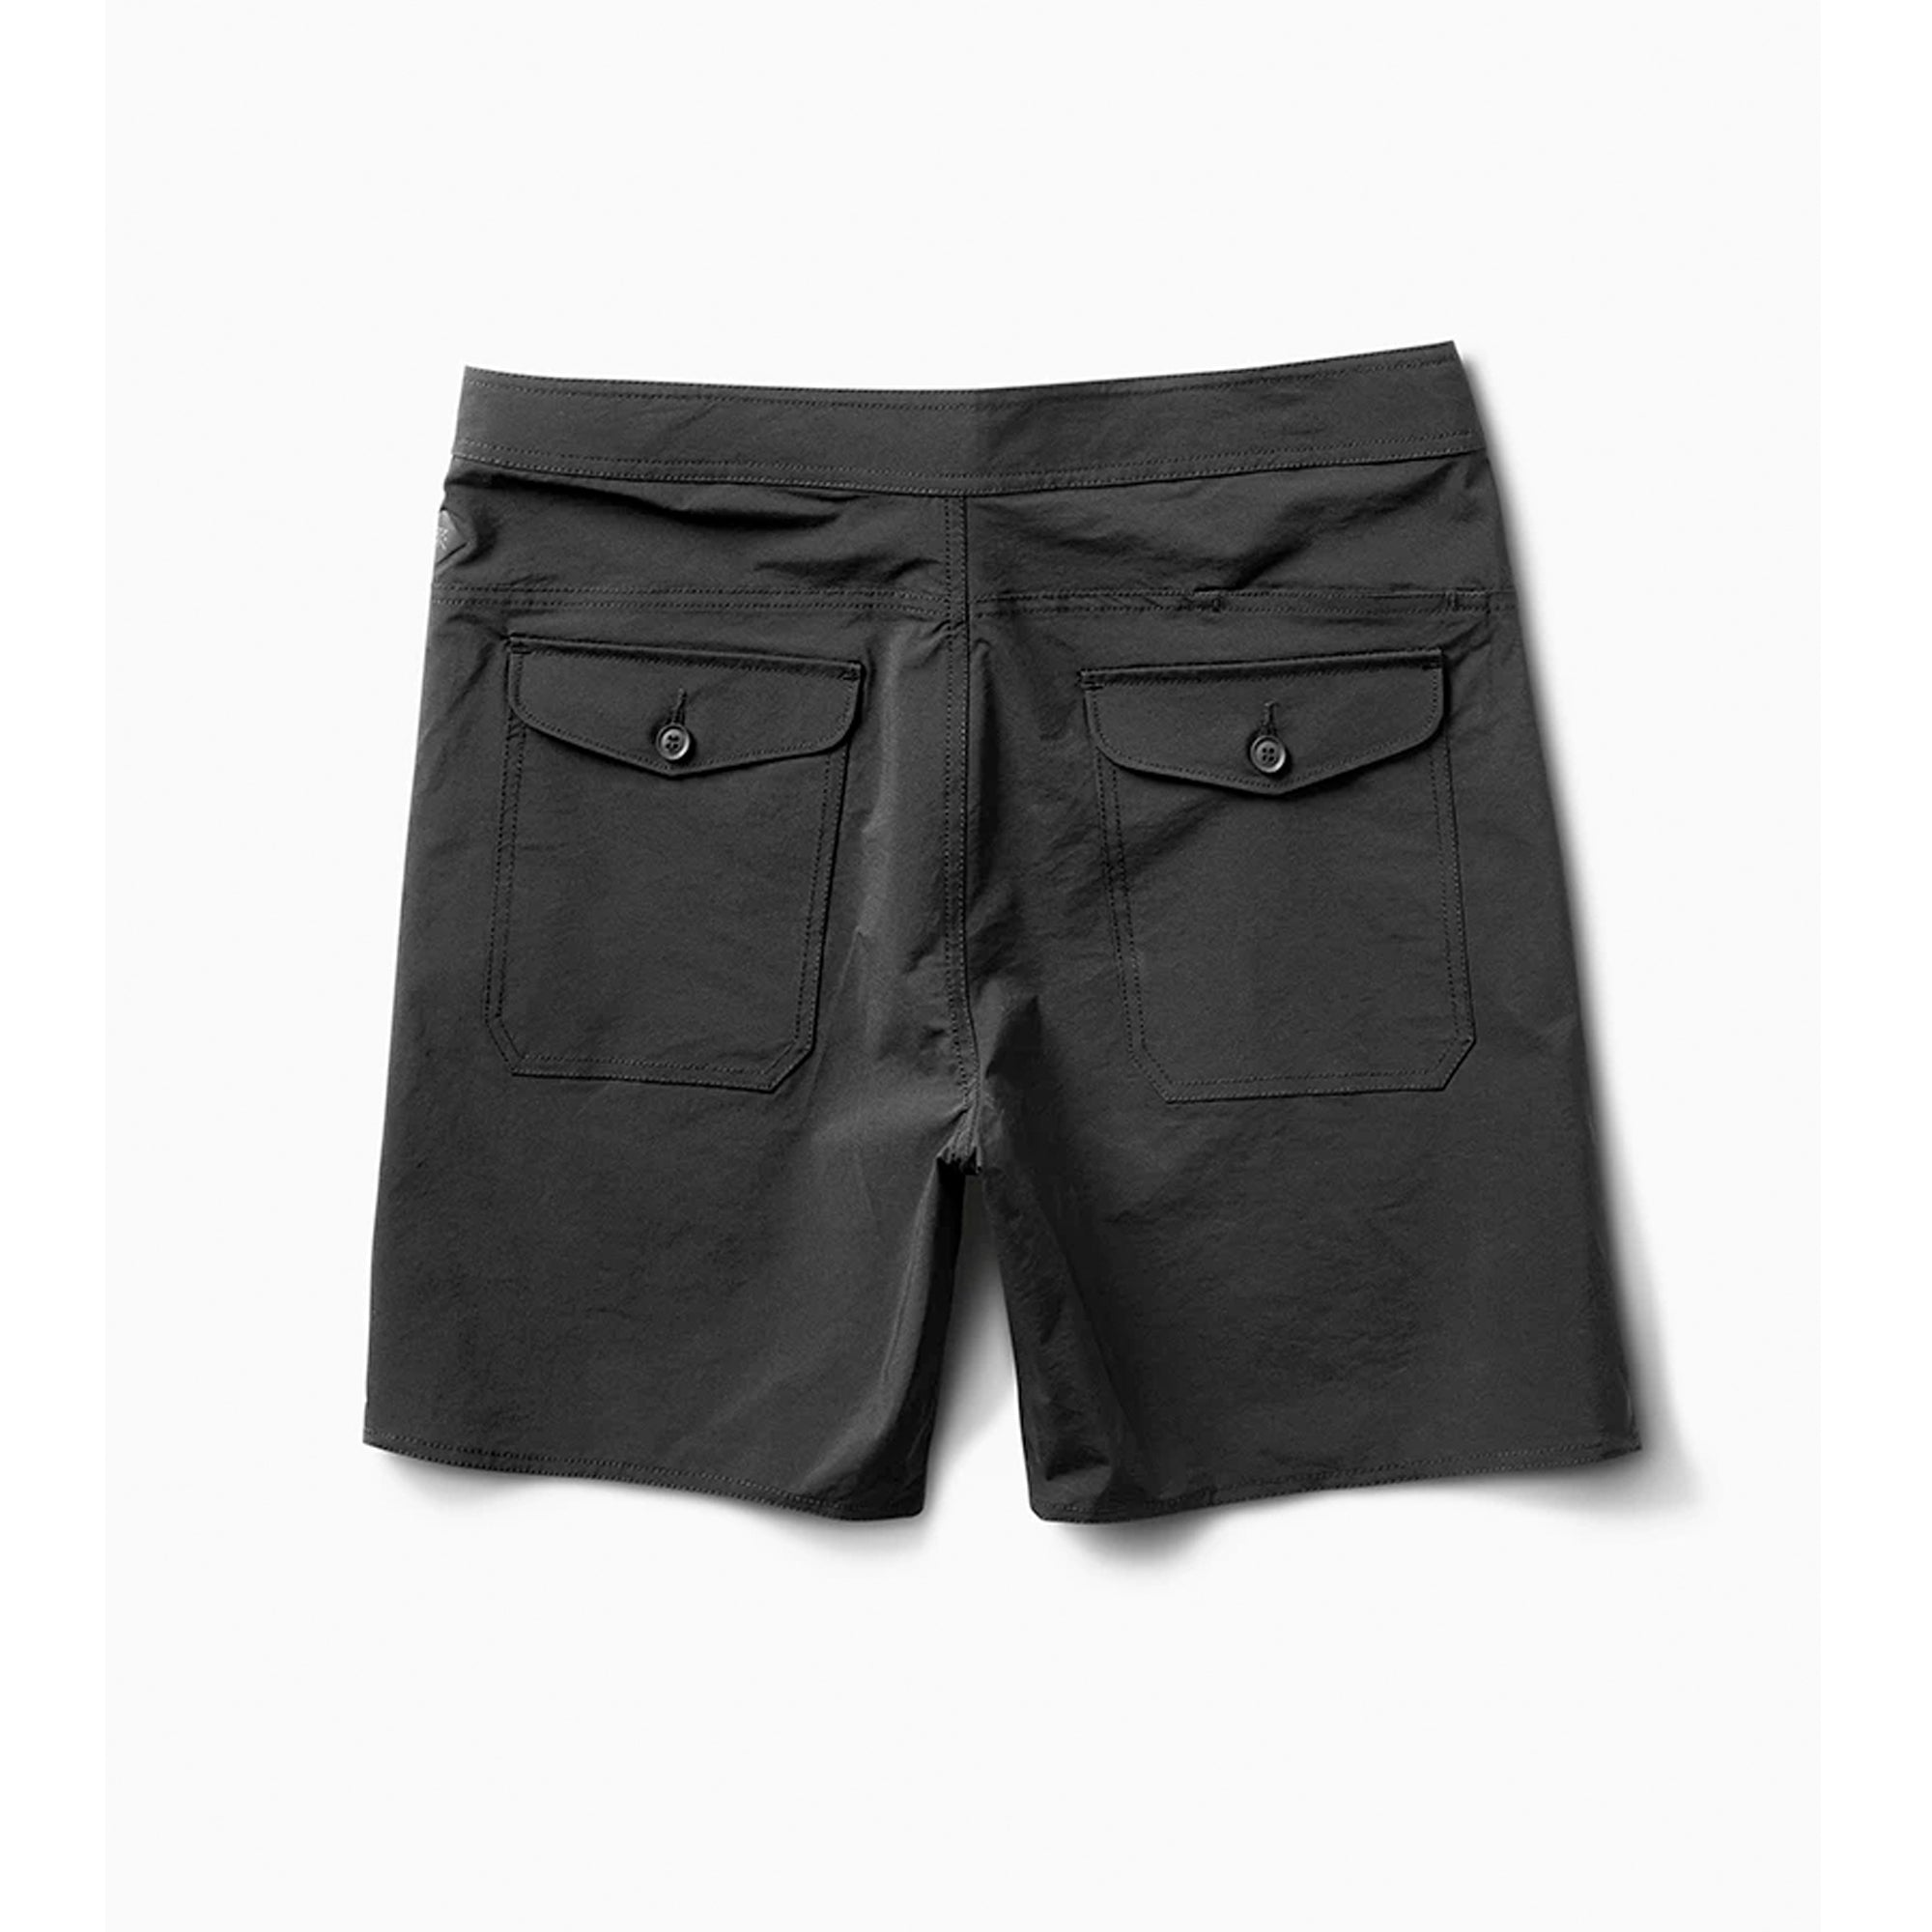 "Roark Layover Trail 18"" Men's Travel Shorts"